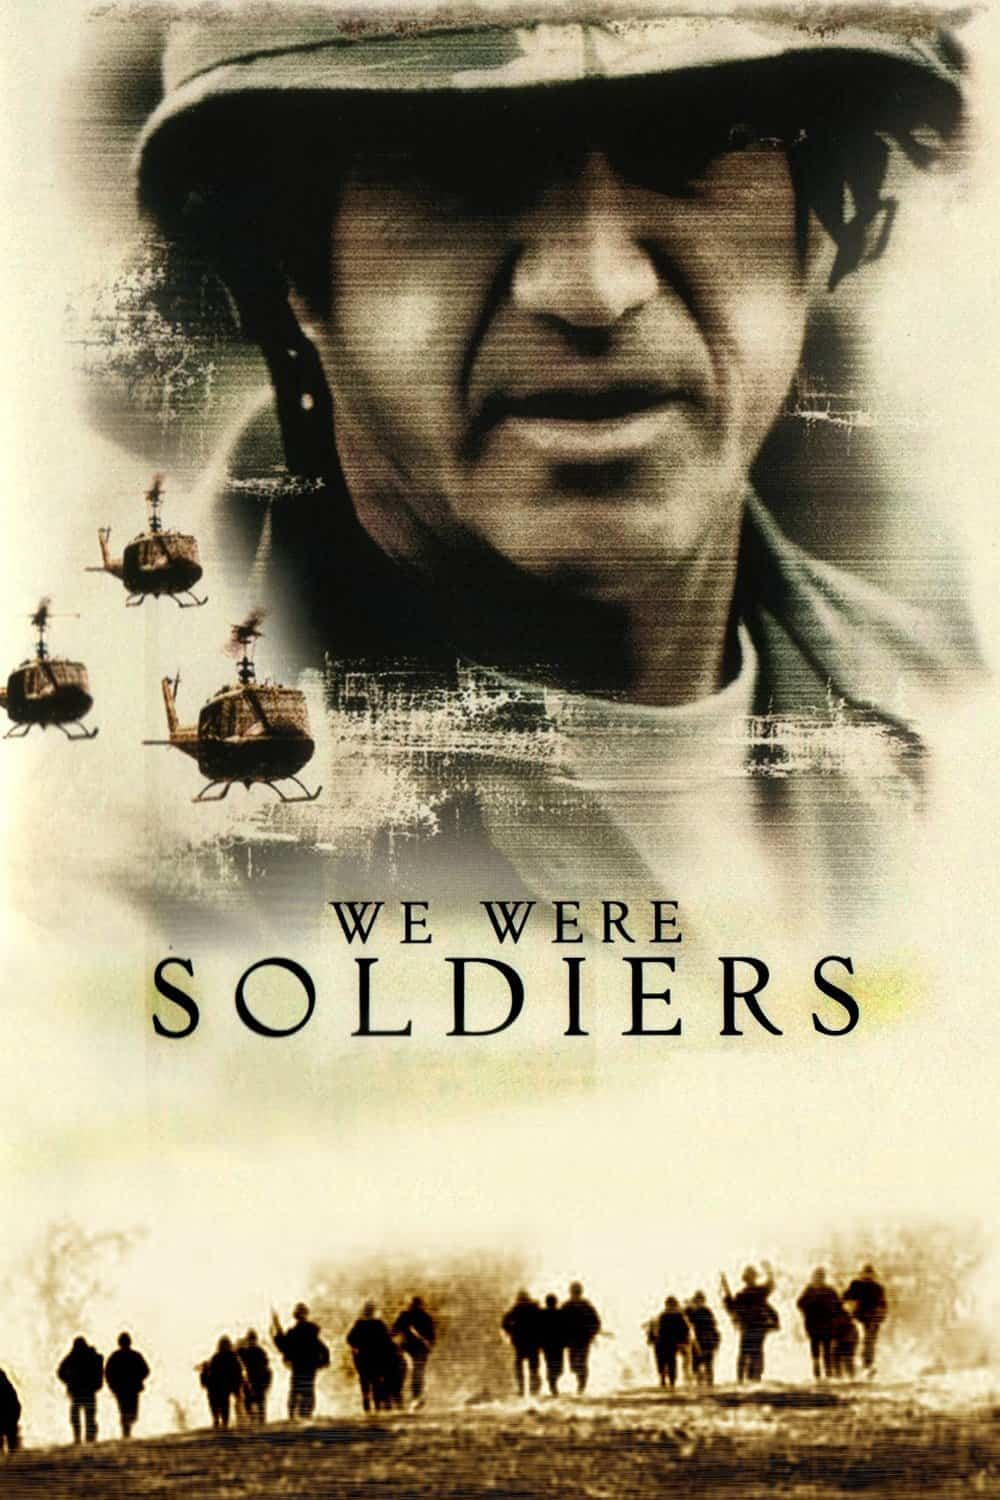 We Were Soldiers, 2002